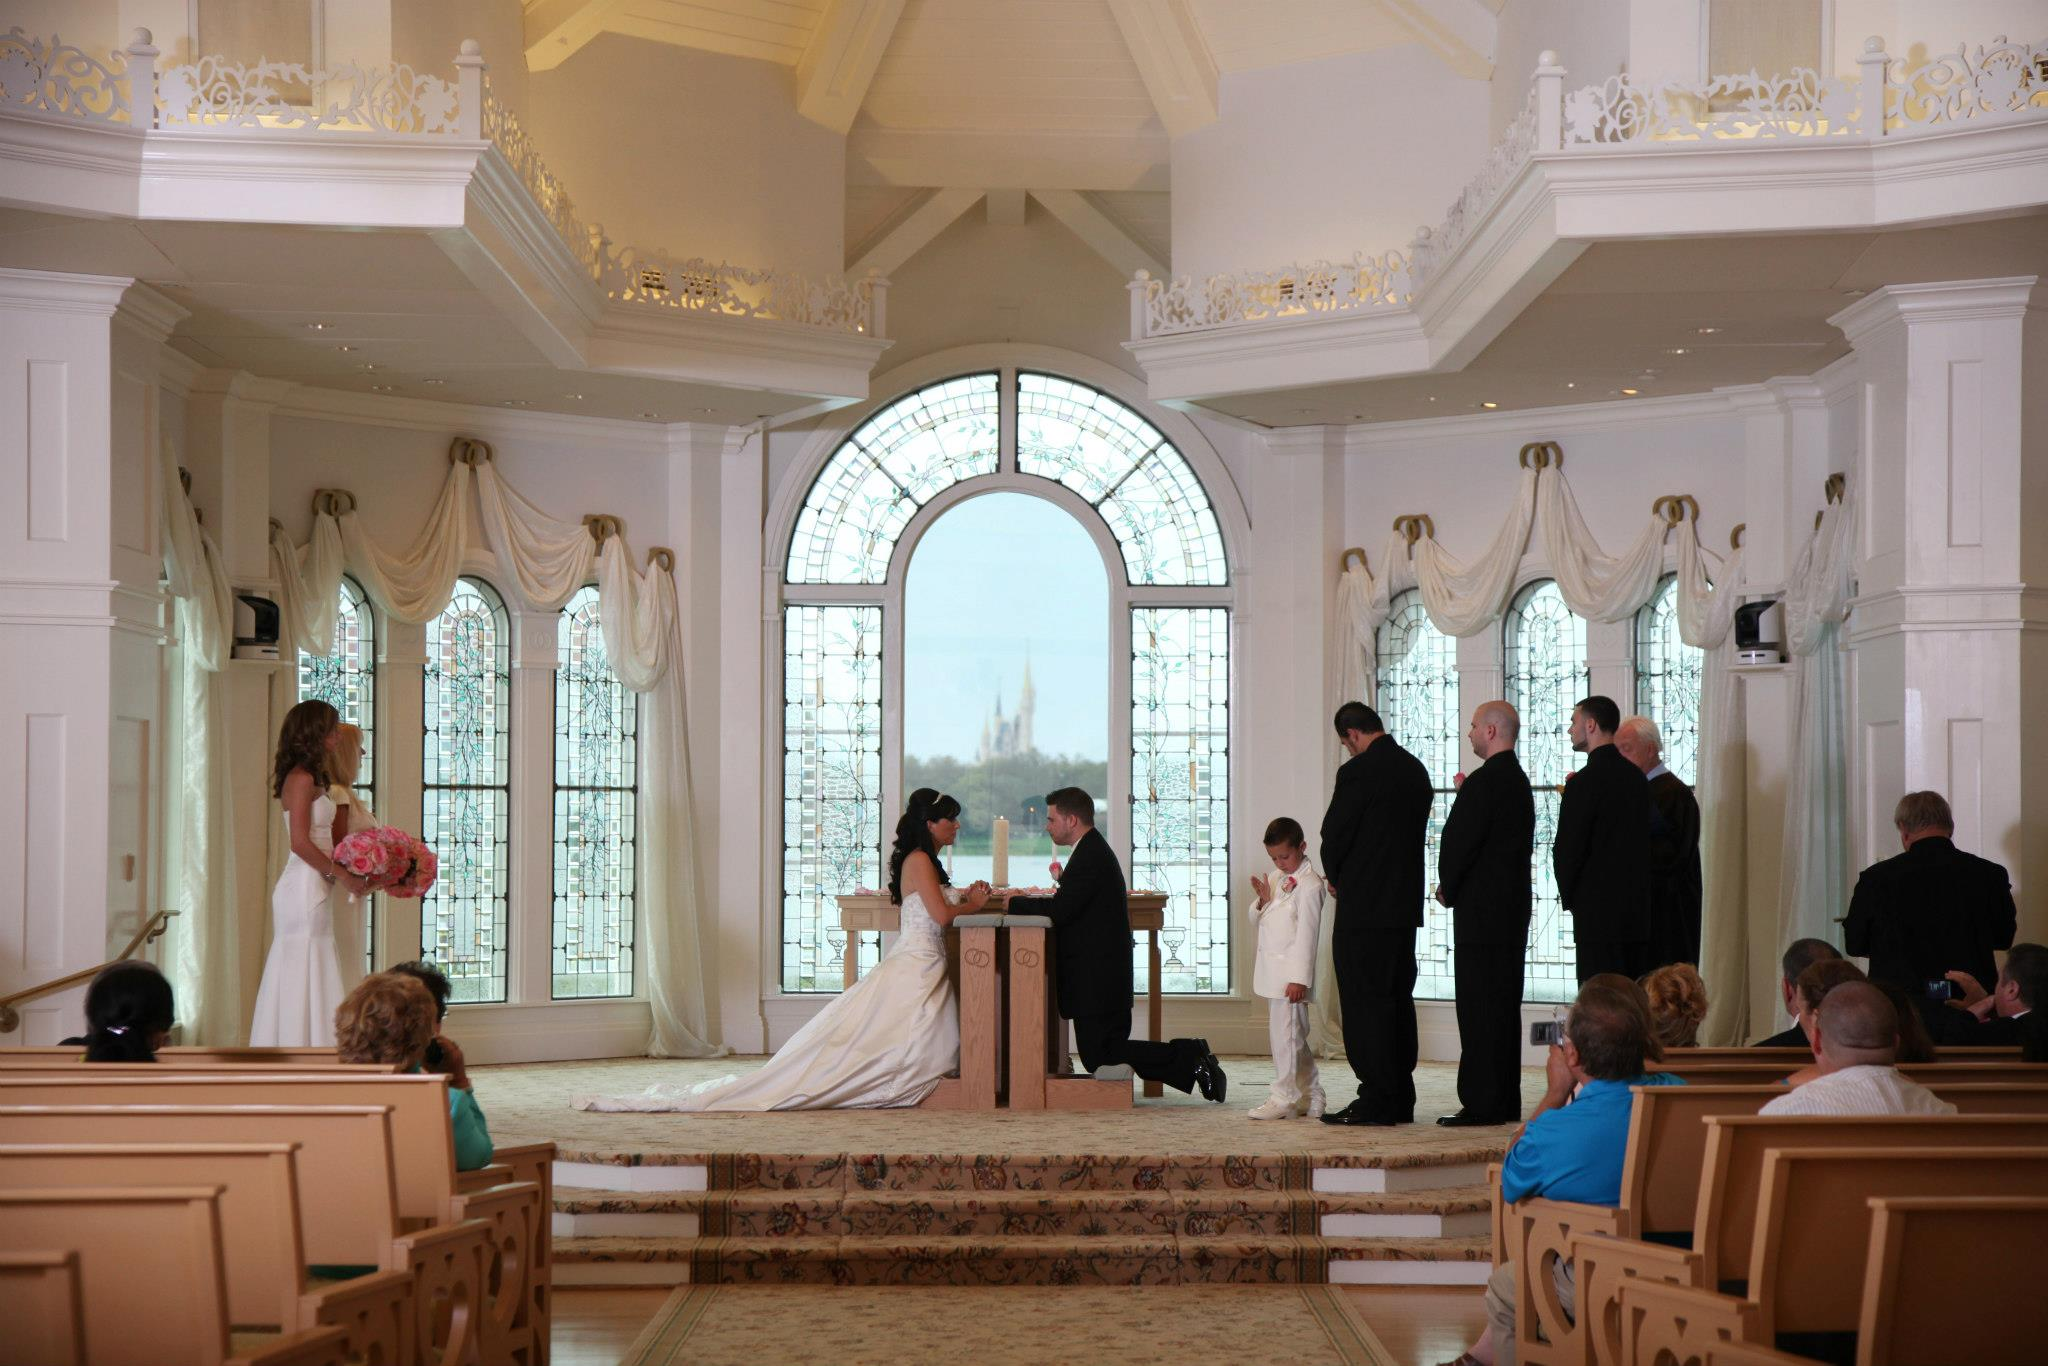 Ceremony options for catholic couples disney wedding podcast 901914429402213816080596000243o 901403429404393815862349578236o renee reception 9069544301228870773461954268047o junglespirit Image collections